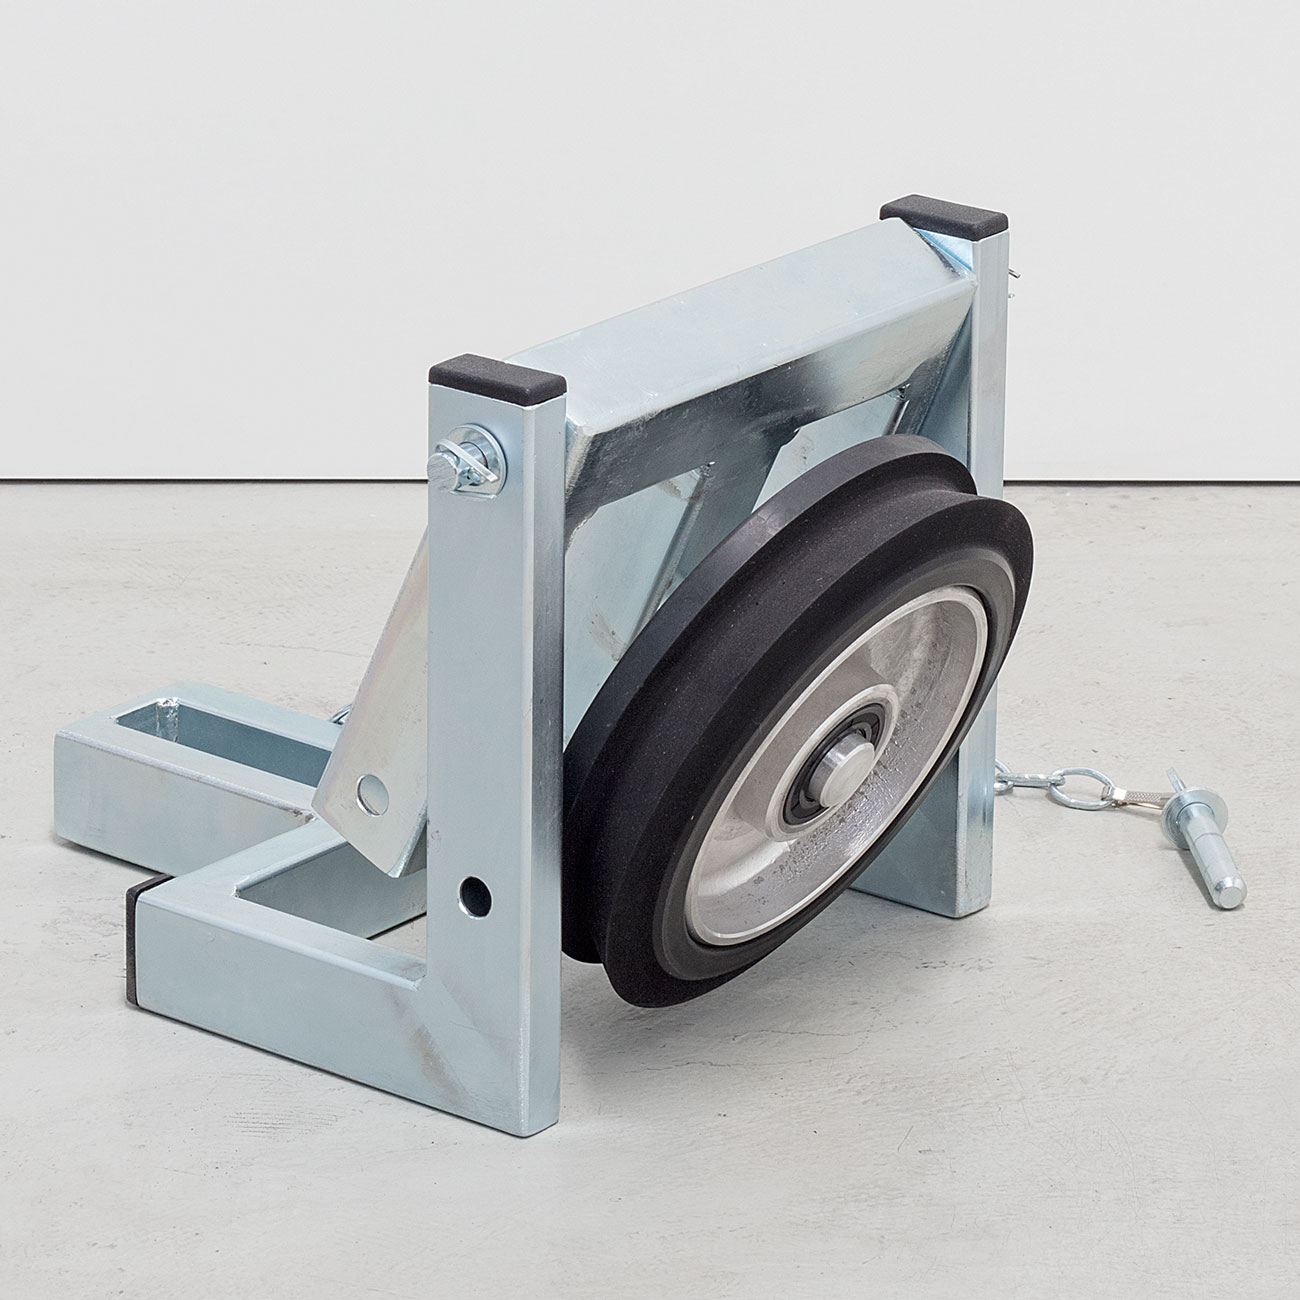 buy wire saw accessories from Plattner and ask for a price of ...